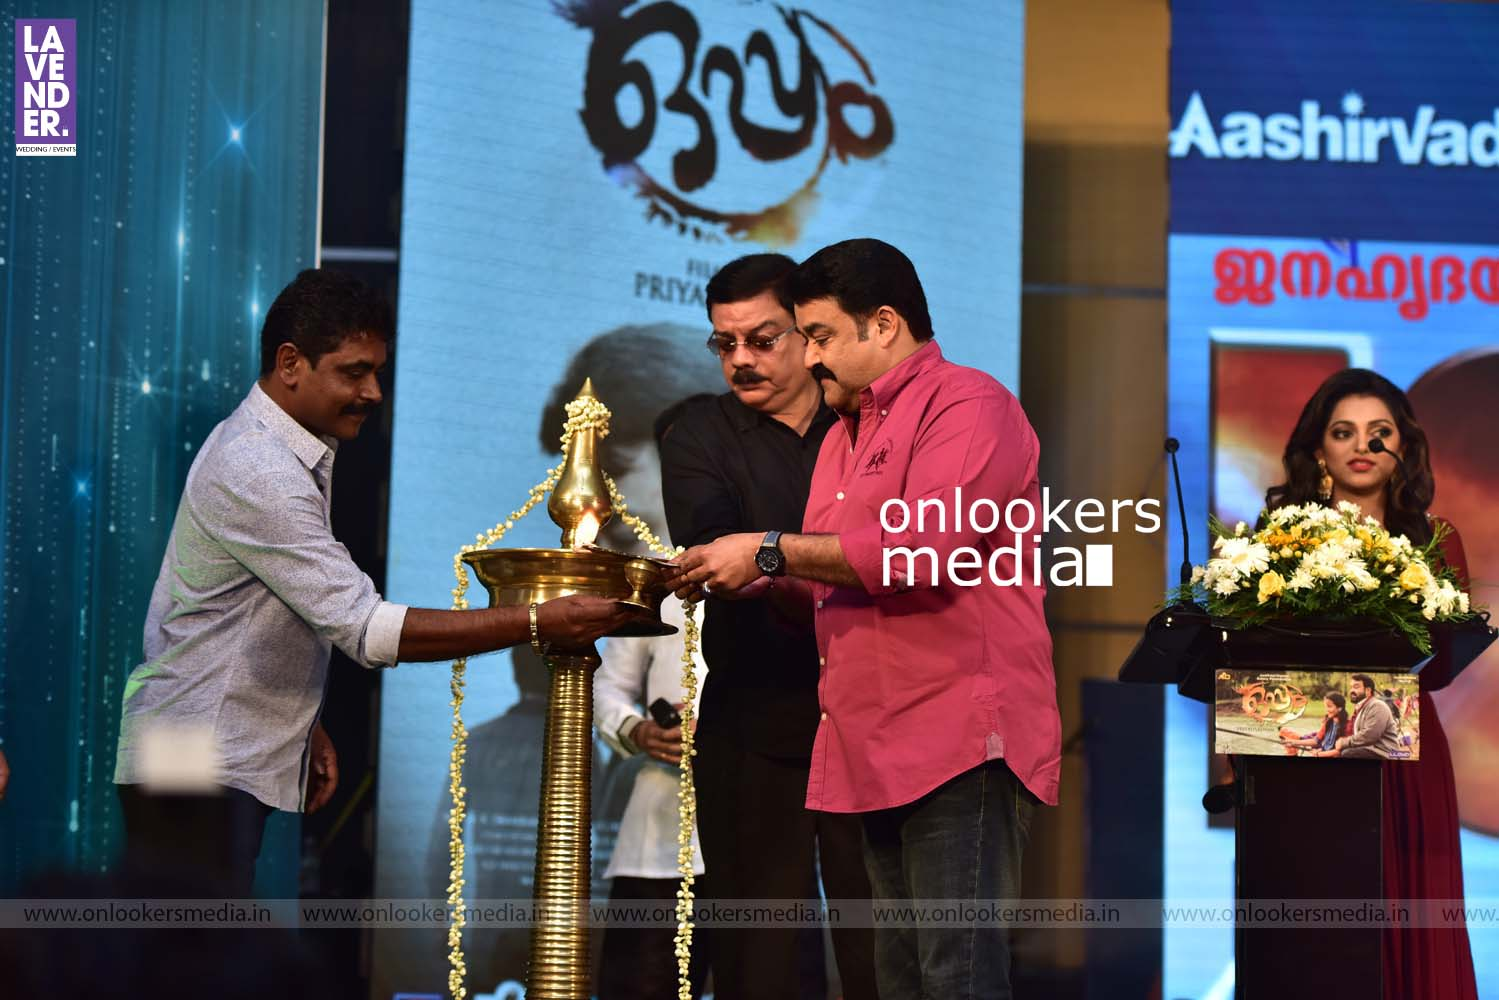 http://onlookersmedia.in/wp-content/uploads/2017/01/Oppam-100-Days-Celebration-Stills-Photos-33.jpg